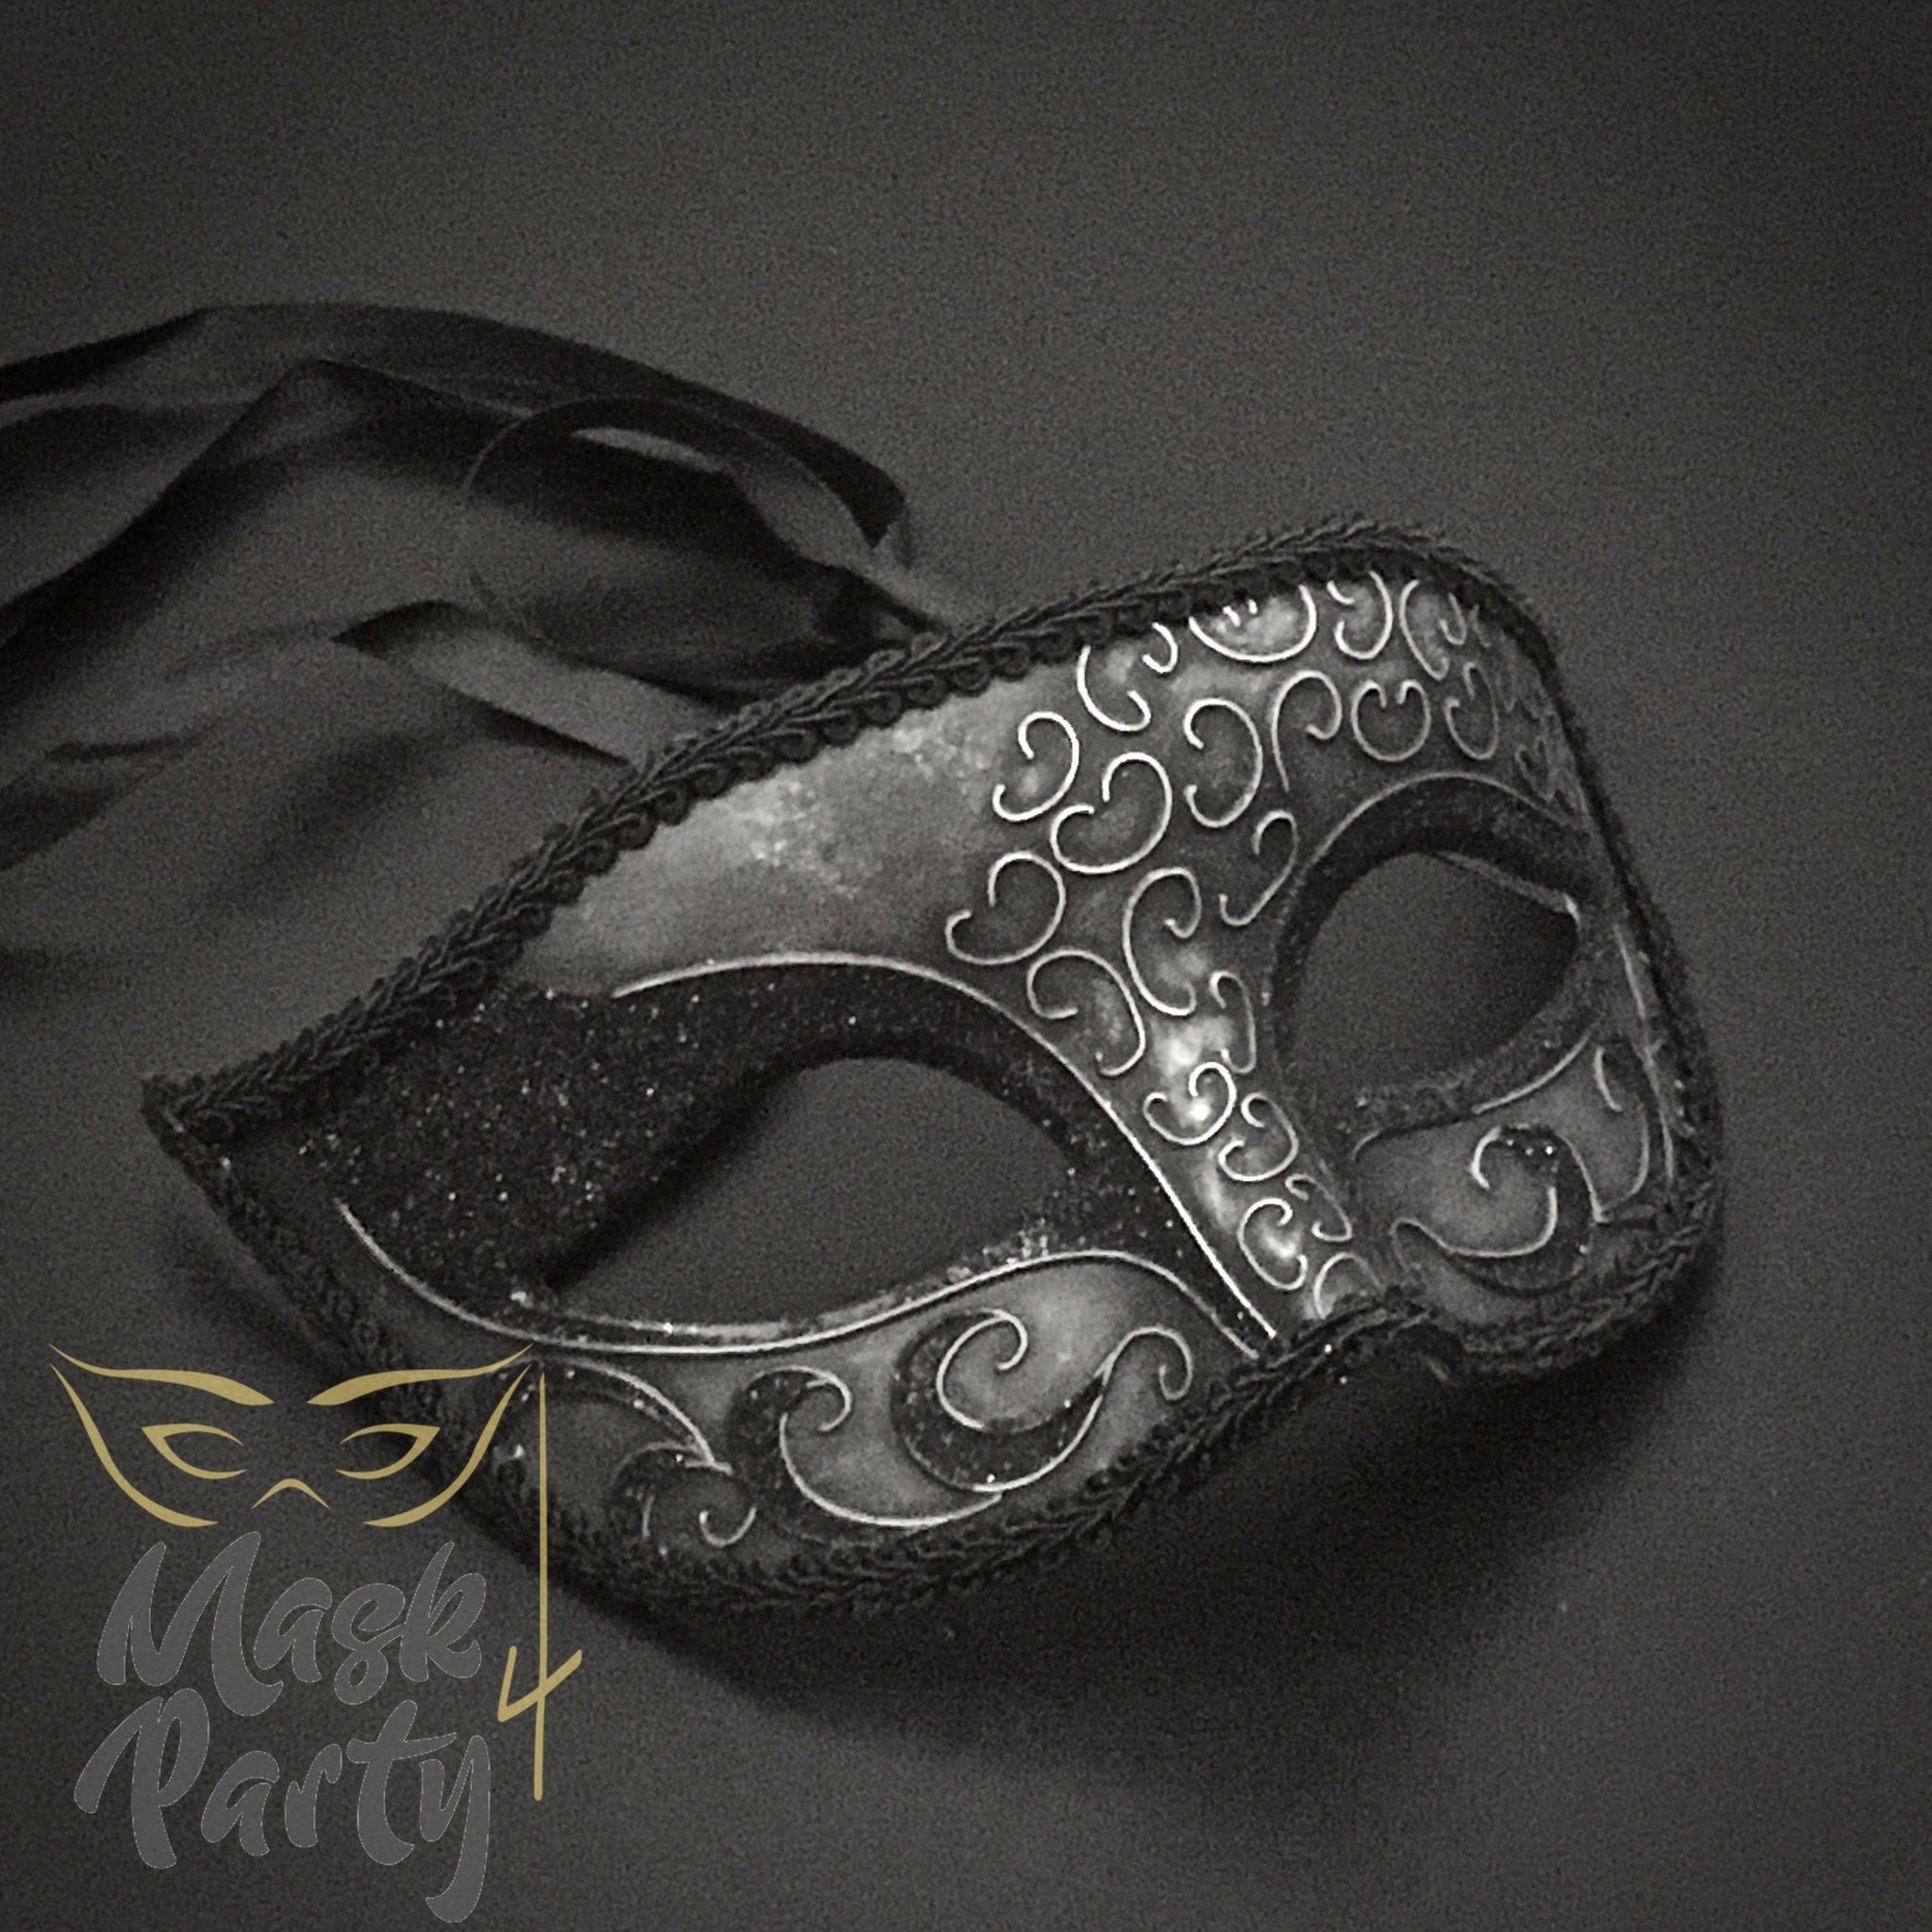 SALE - Masquerade Mask - Venetian Eye Glitter - Silver/Black Glitter - Mask4Party